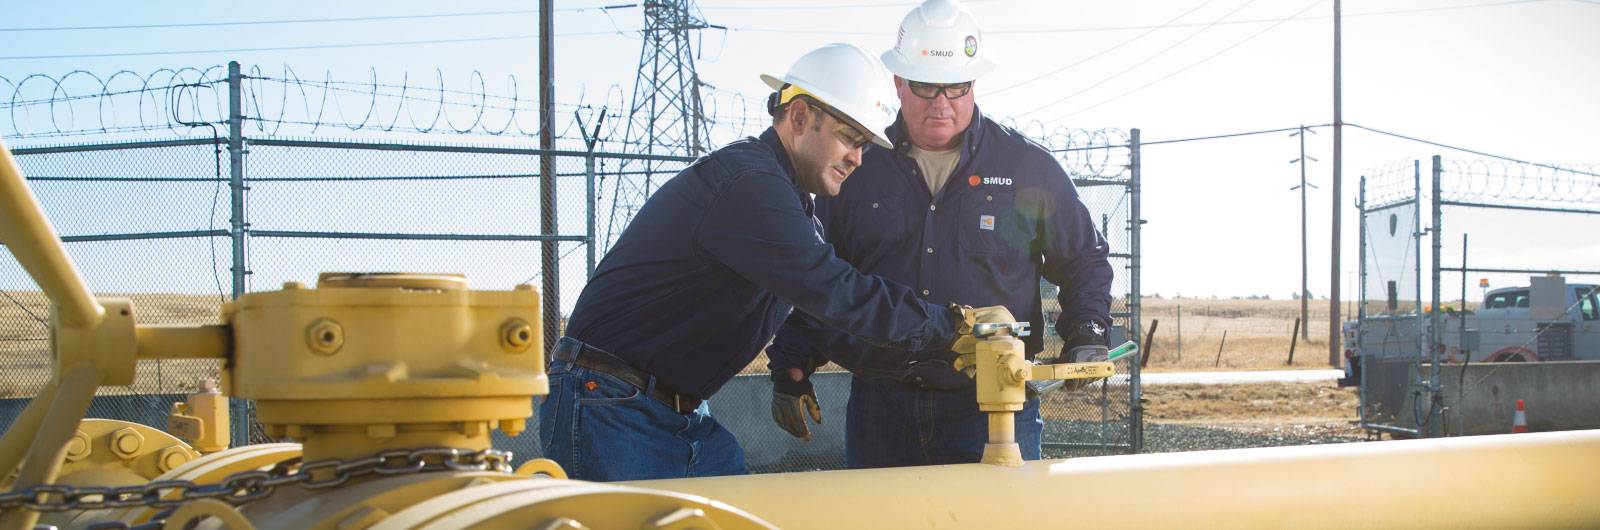 Two employees work on gas pipeline